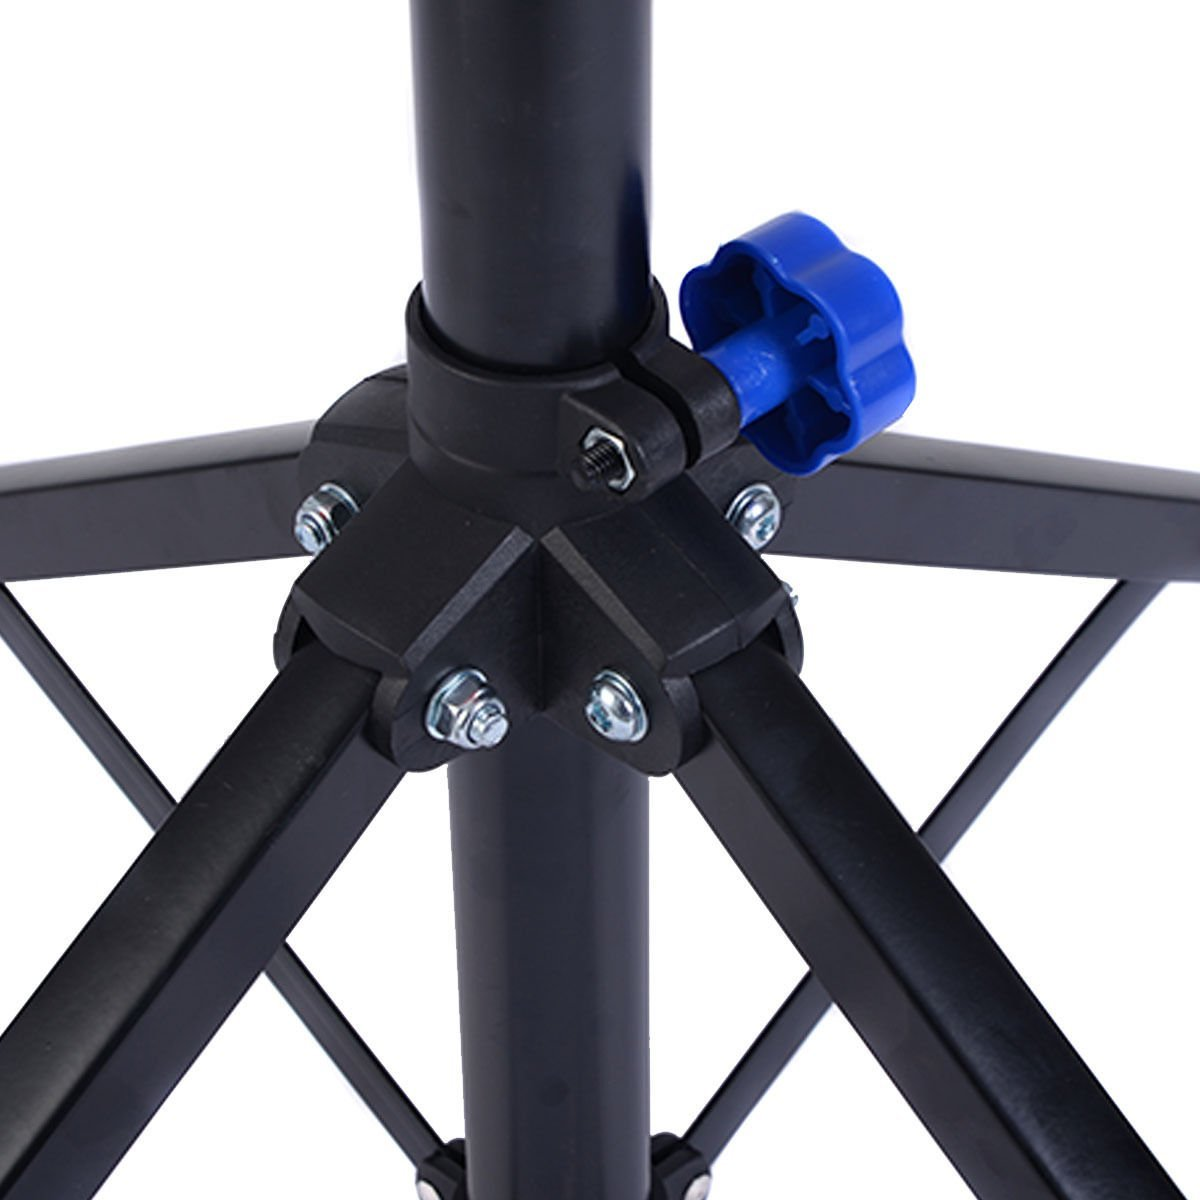 S AFSTAR Pro Mechanic Bike Repair Stand Adjustable 41'' To 75'' Cycle Rack Bicycle Workstand with Tool Tray by S AFSTAR (Image #4)